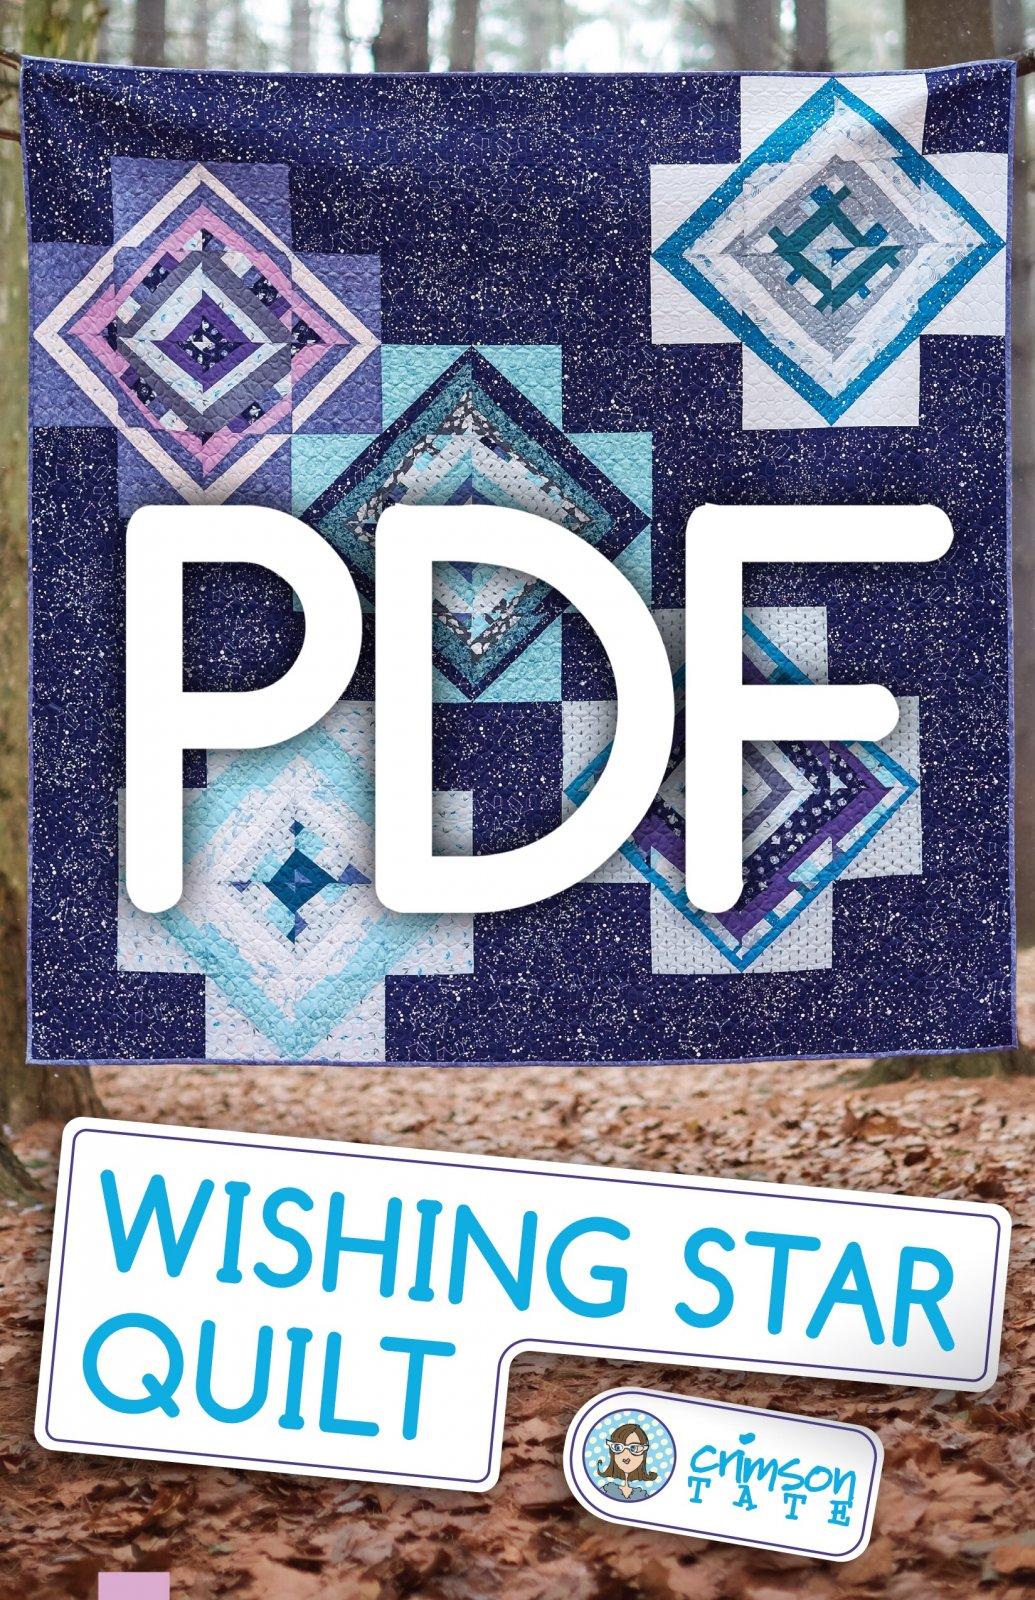 Wishing Star Quilt Pattern (PDF Download)